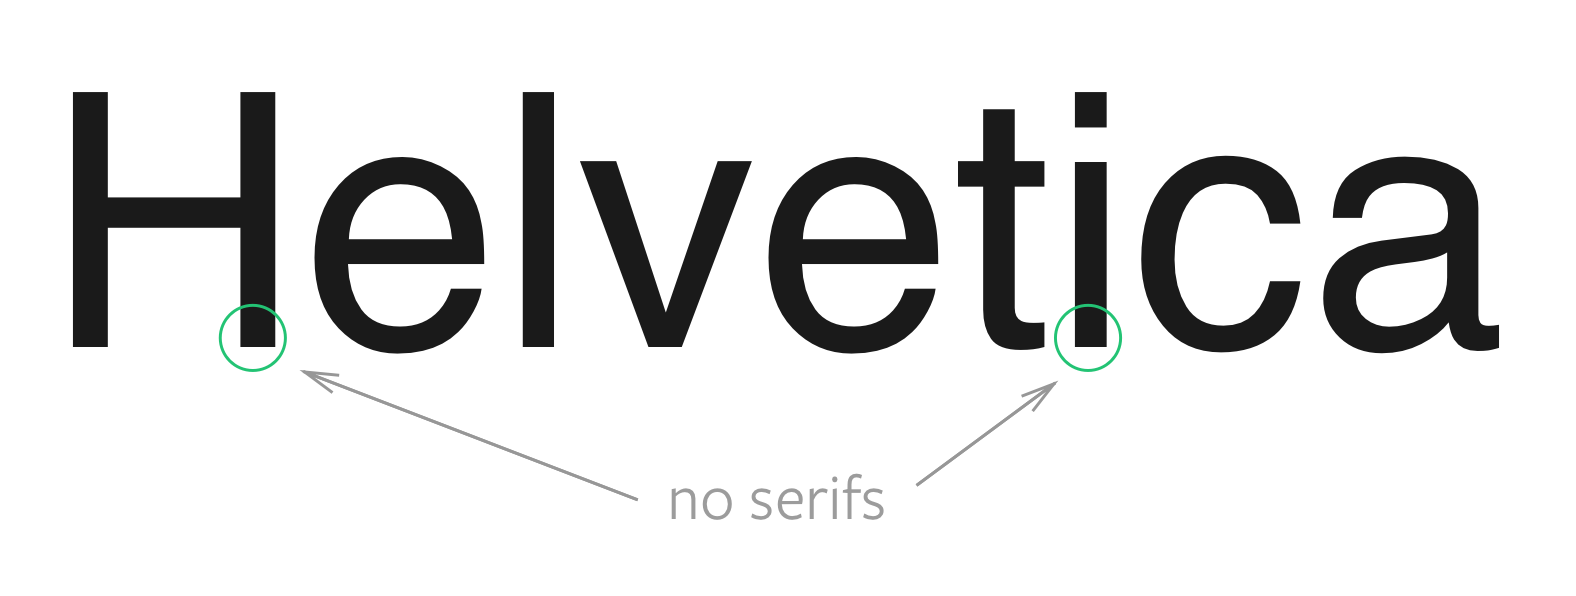 Image of Helvetica typeface that contains no serifs